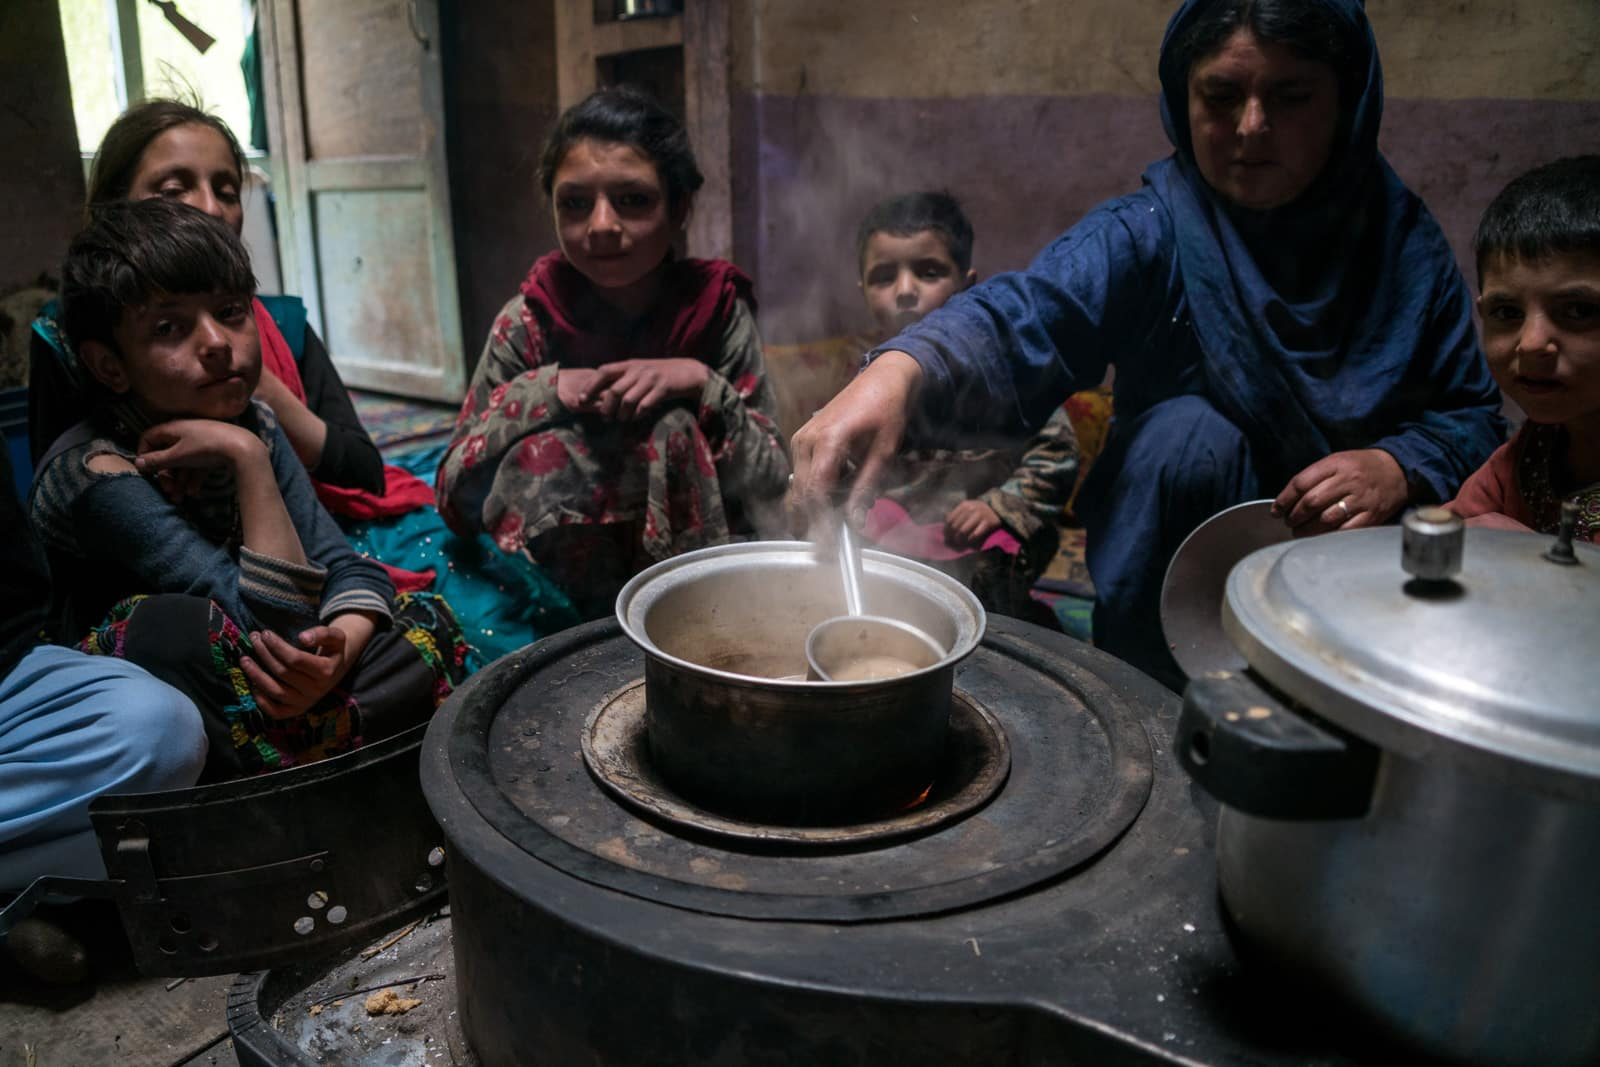 Phander Valley travel guide - Making tea in someone's home - Lost With Purpose travel blog